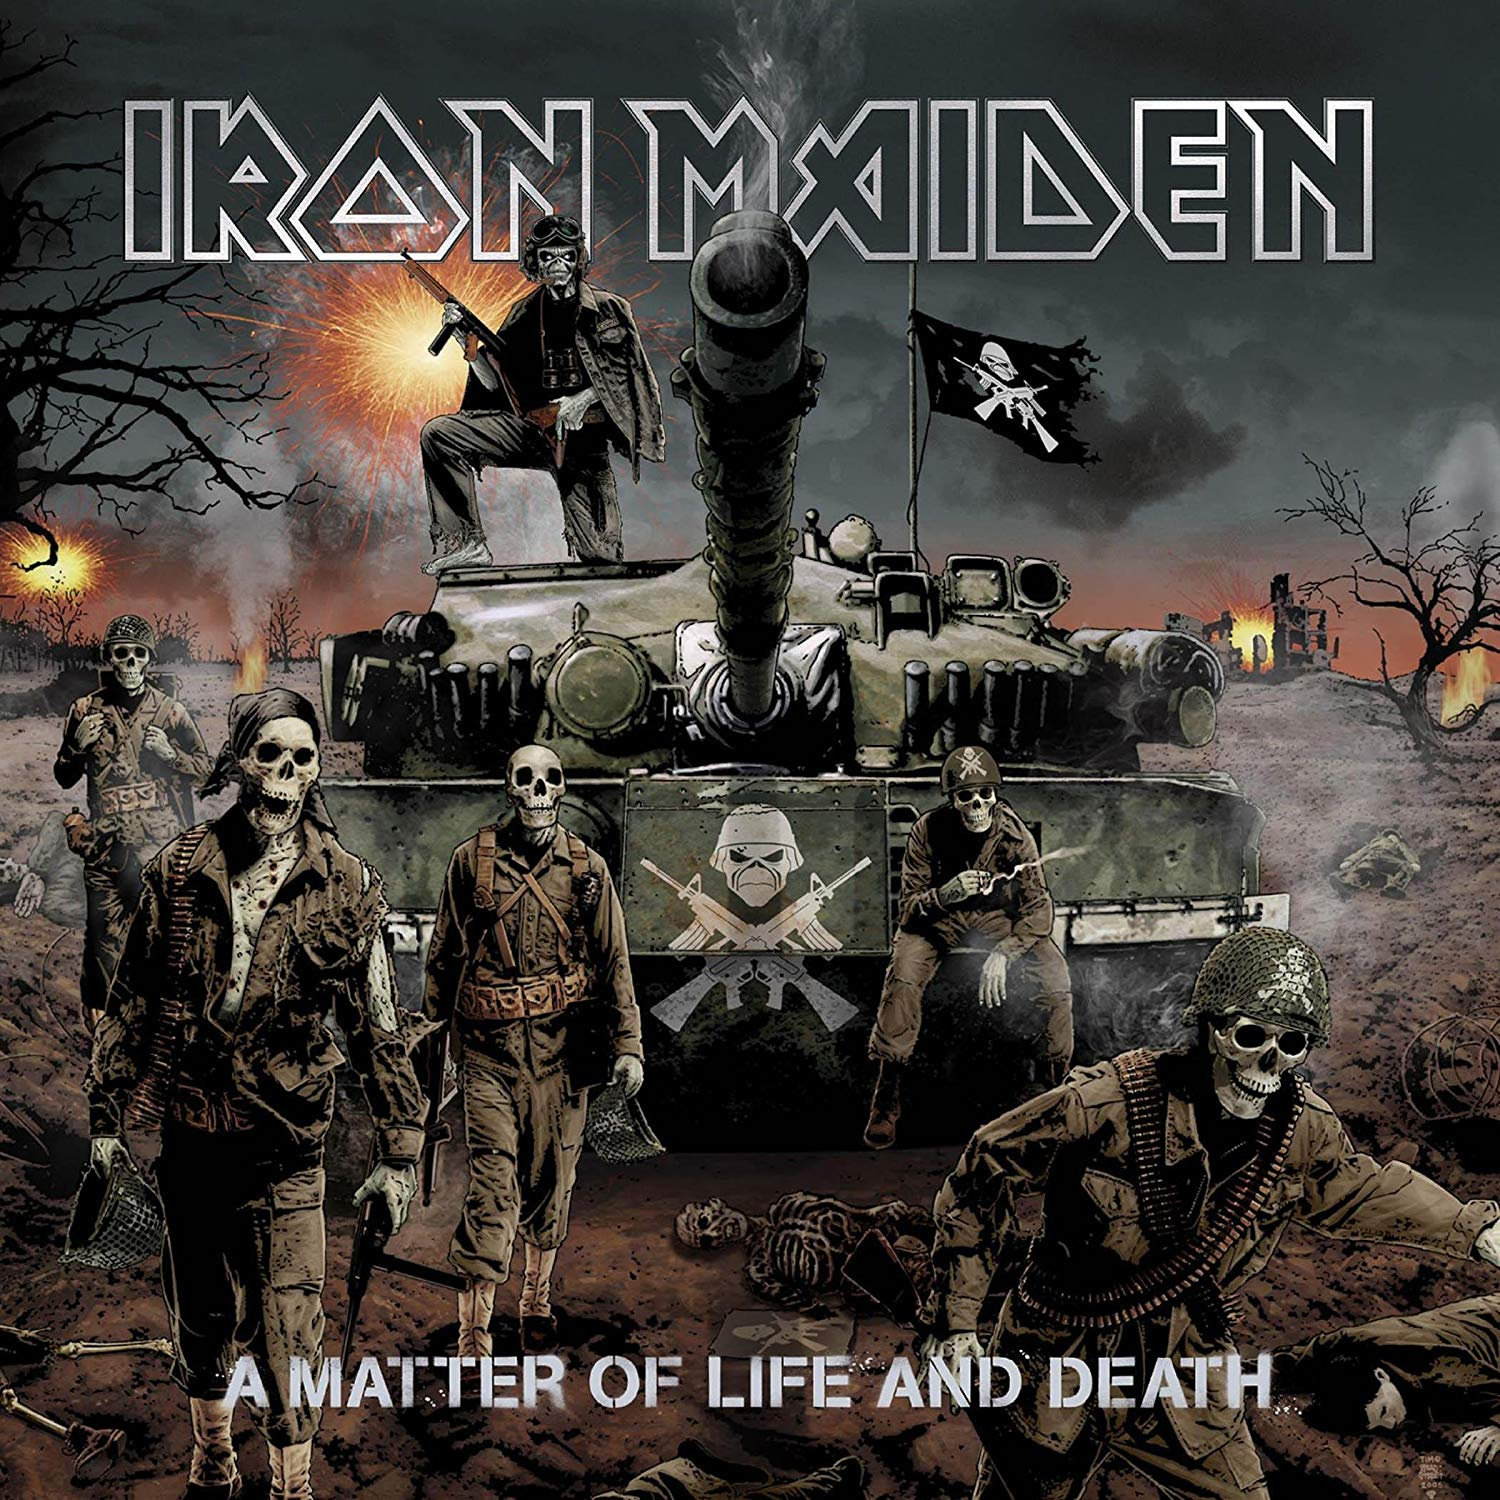 Posterhub Music Iron Maiden Band United Kingdom Metallica - Iron Maiden A Matter Of Life And Death Album Cover - HD Wallpaper